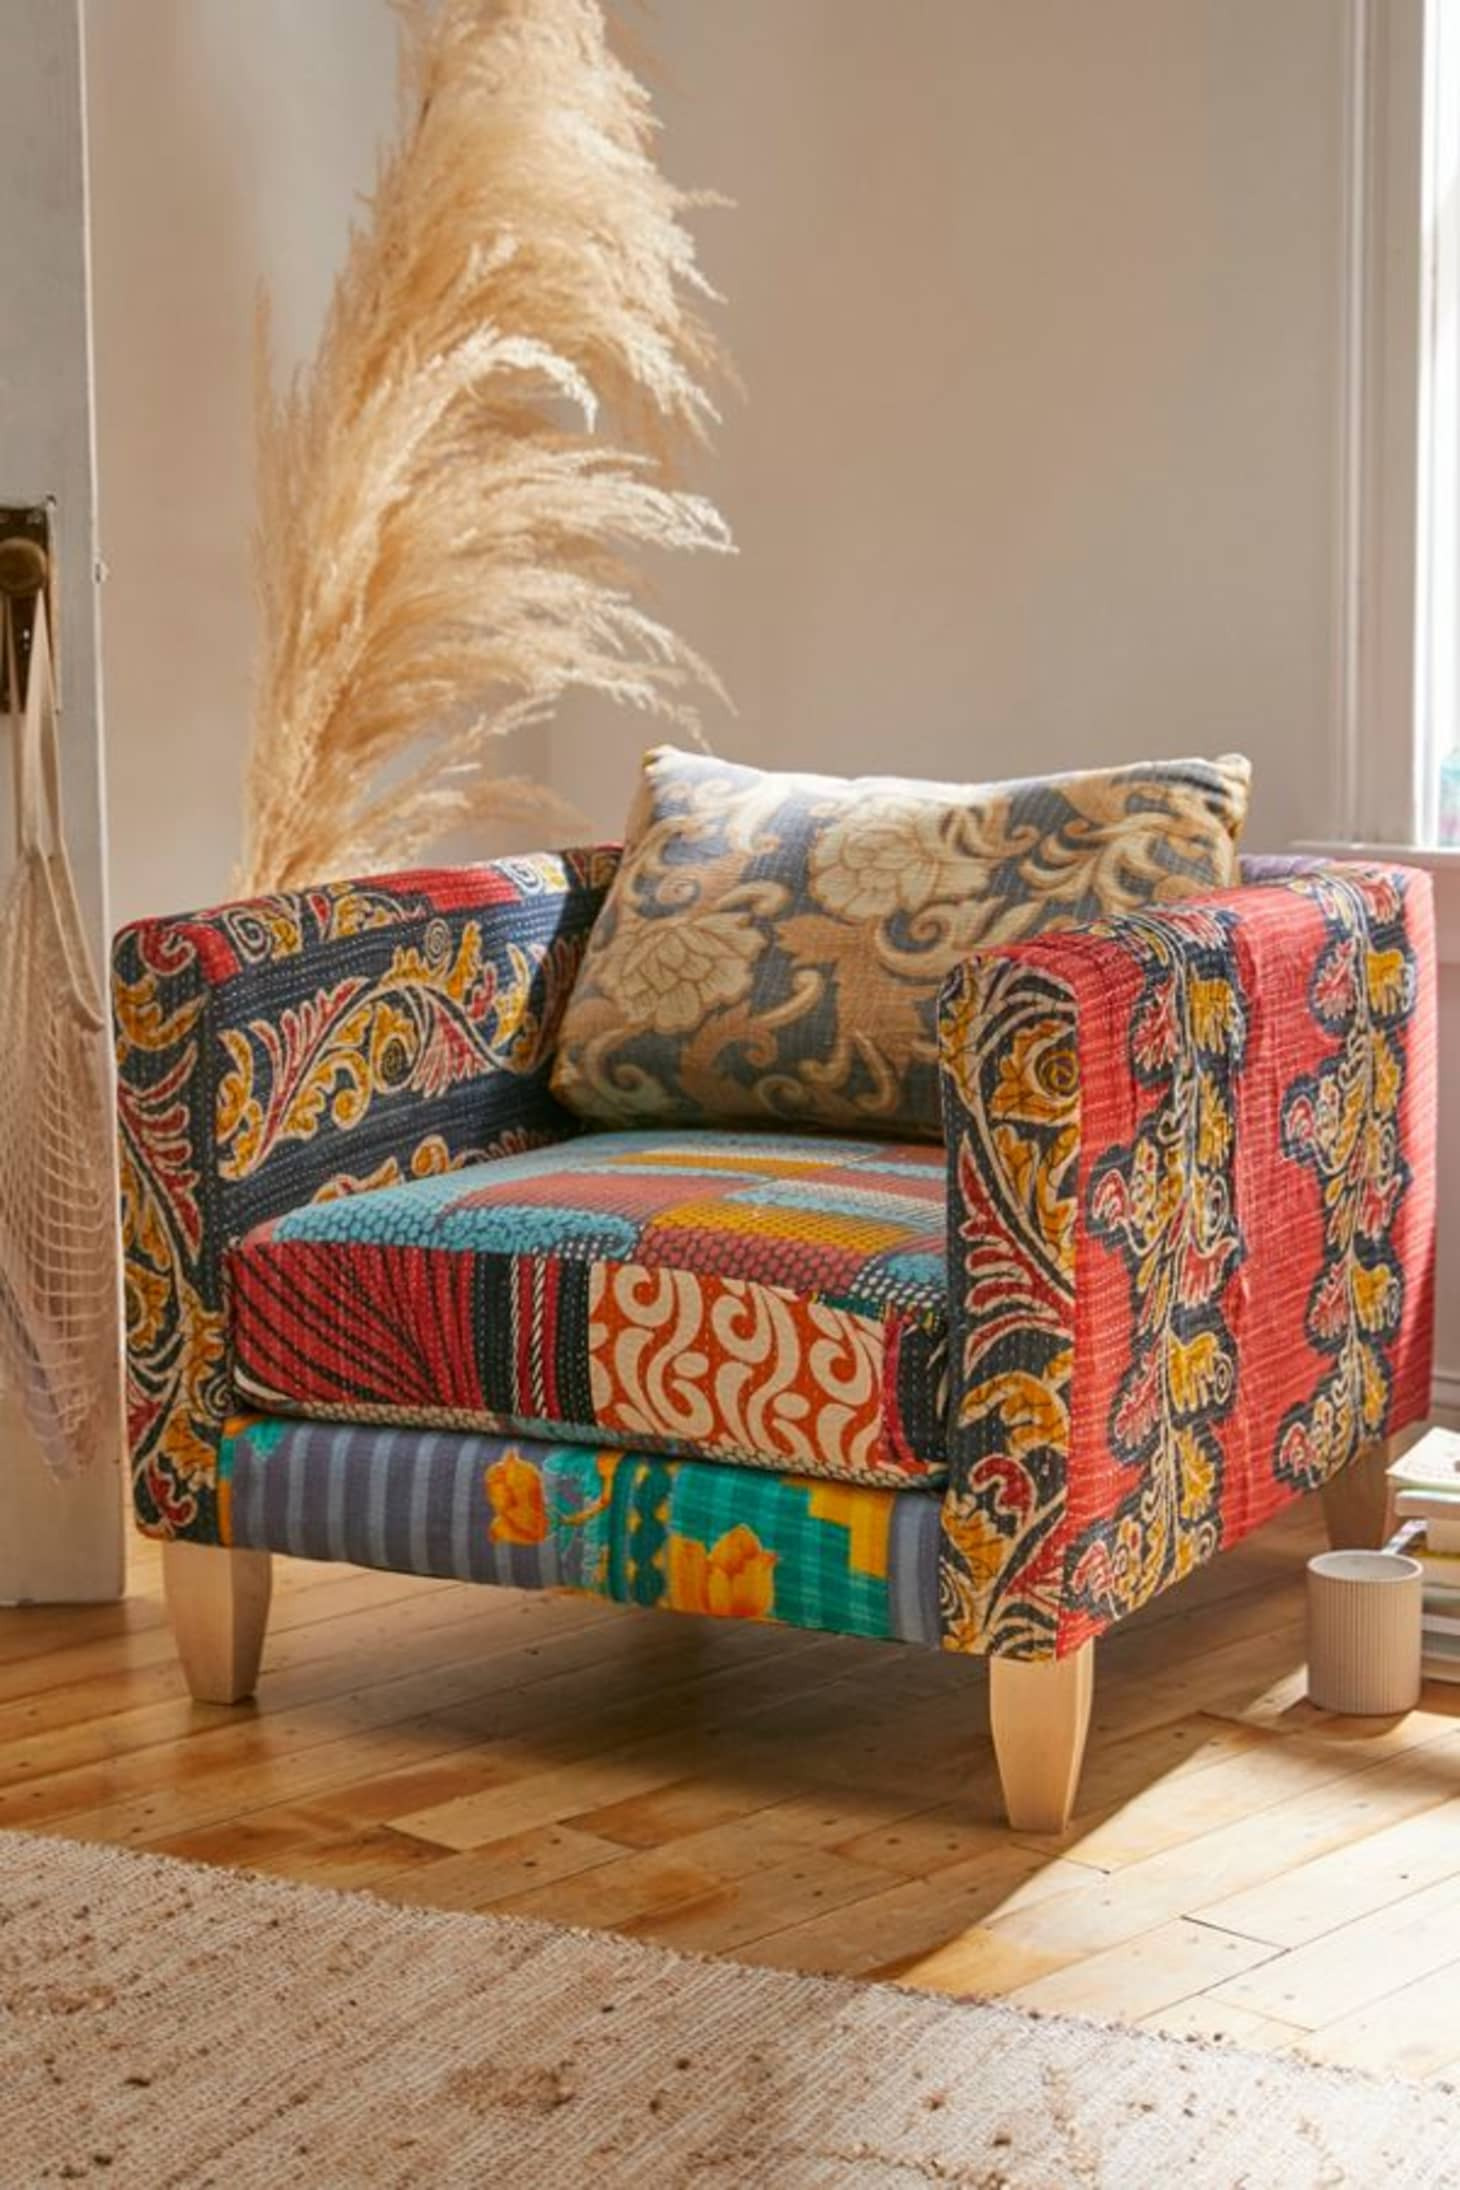 Antique or Vintage Furniture Lovely the Best Places to Buy Used and Vintage Furniture Line